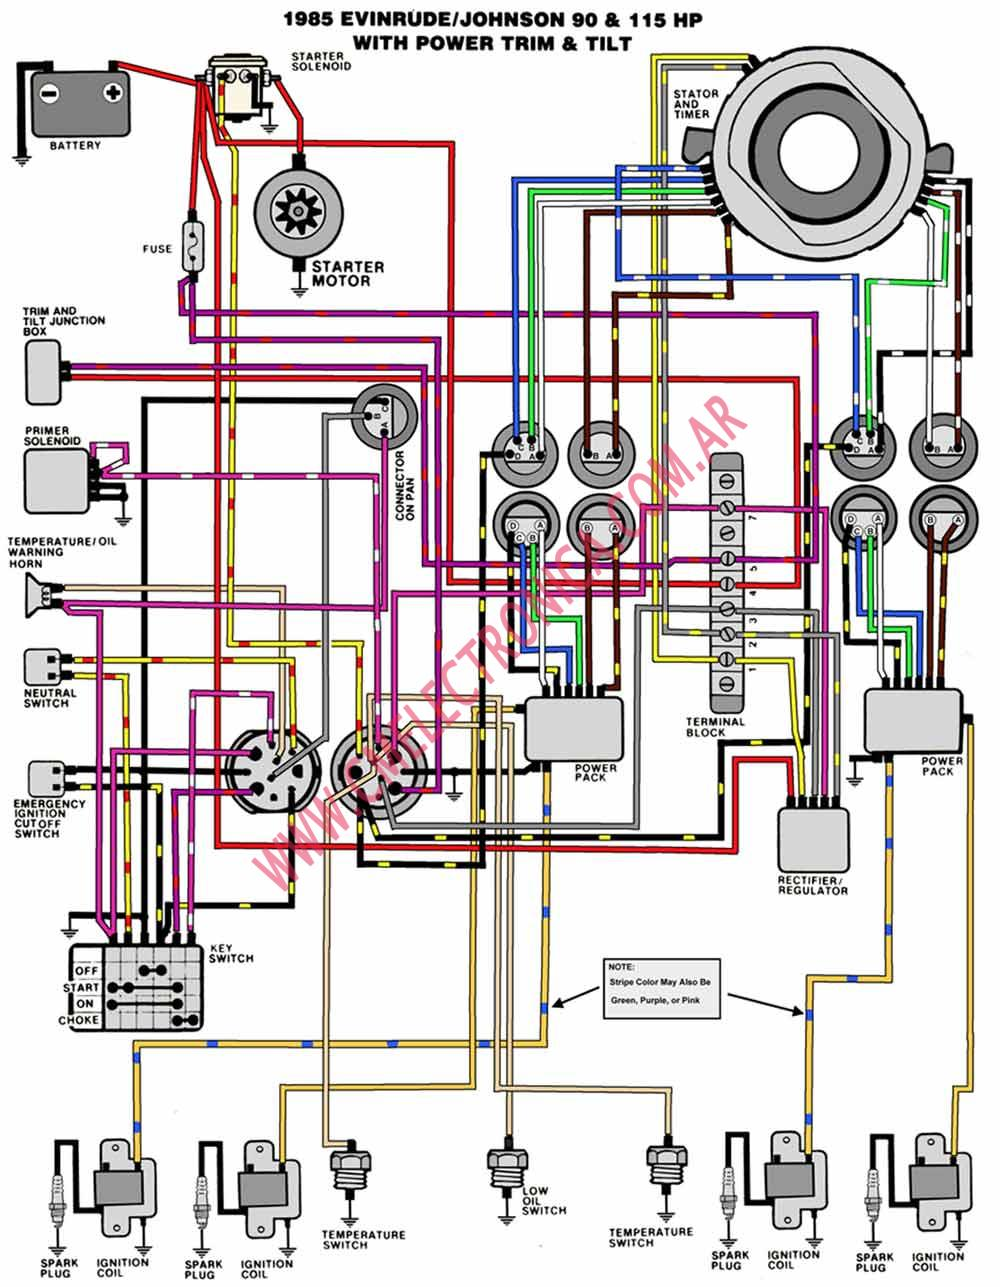 yamaha 90 outboard wiring diagram readingrat net 175 HP Mercury Outboard Wiring Diagram 115 HP Mercury Outboard Motor 1995 mercury outboard 115 hp wiring diagram